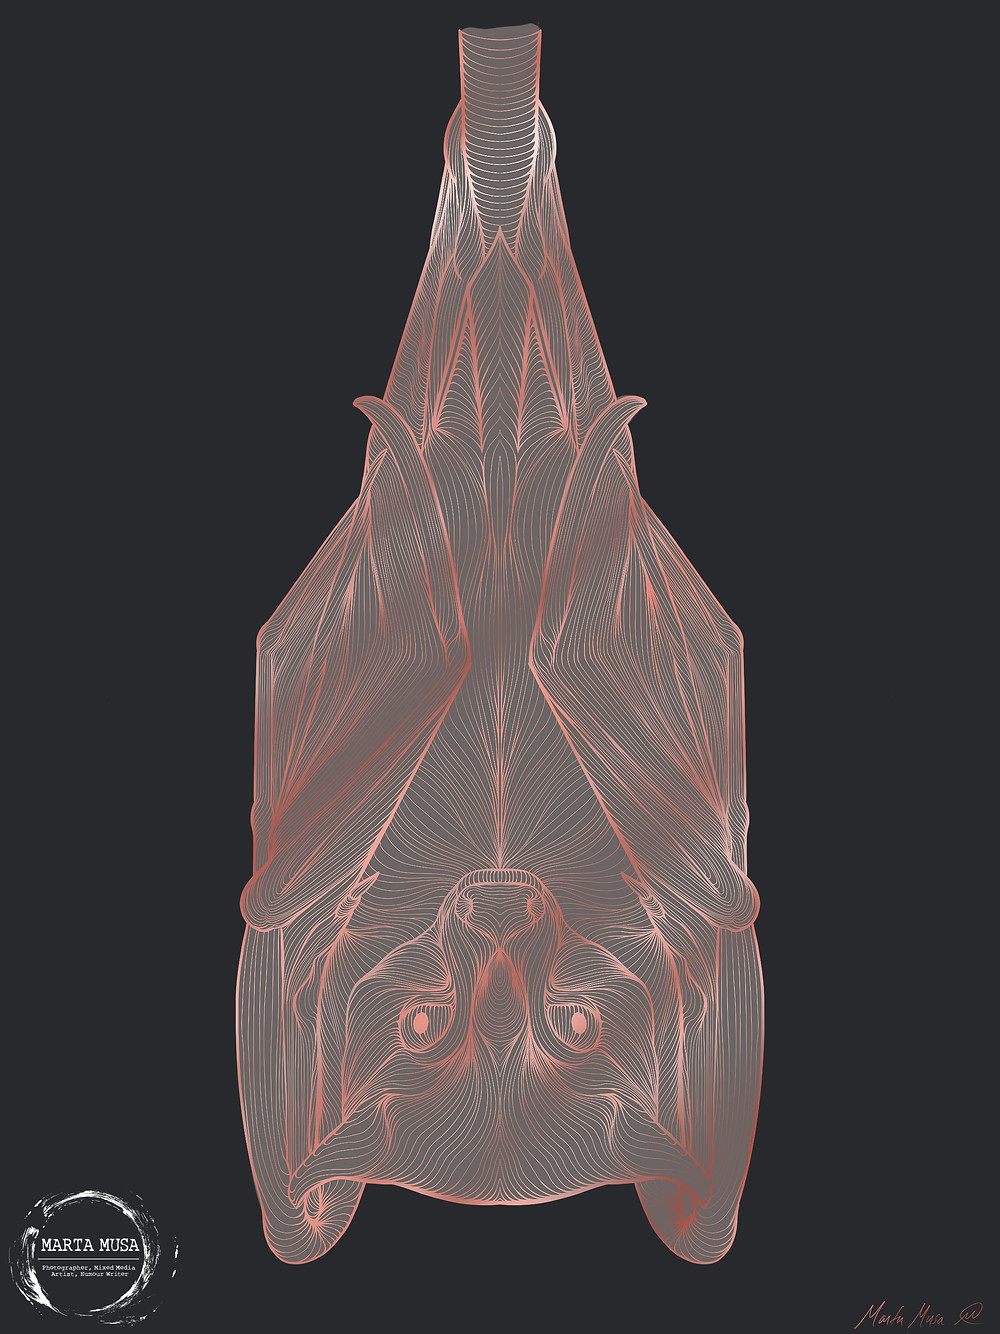 Contour LIne Drawing of an upside down Fruit Bat.  The illustration is against a dark blue background.  The lines of the bat are illustrated in a shiny light pink, The body of the Bat is coloured in a shiny light grey